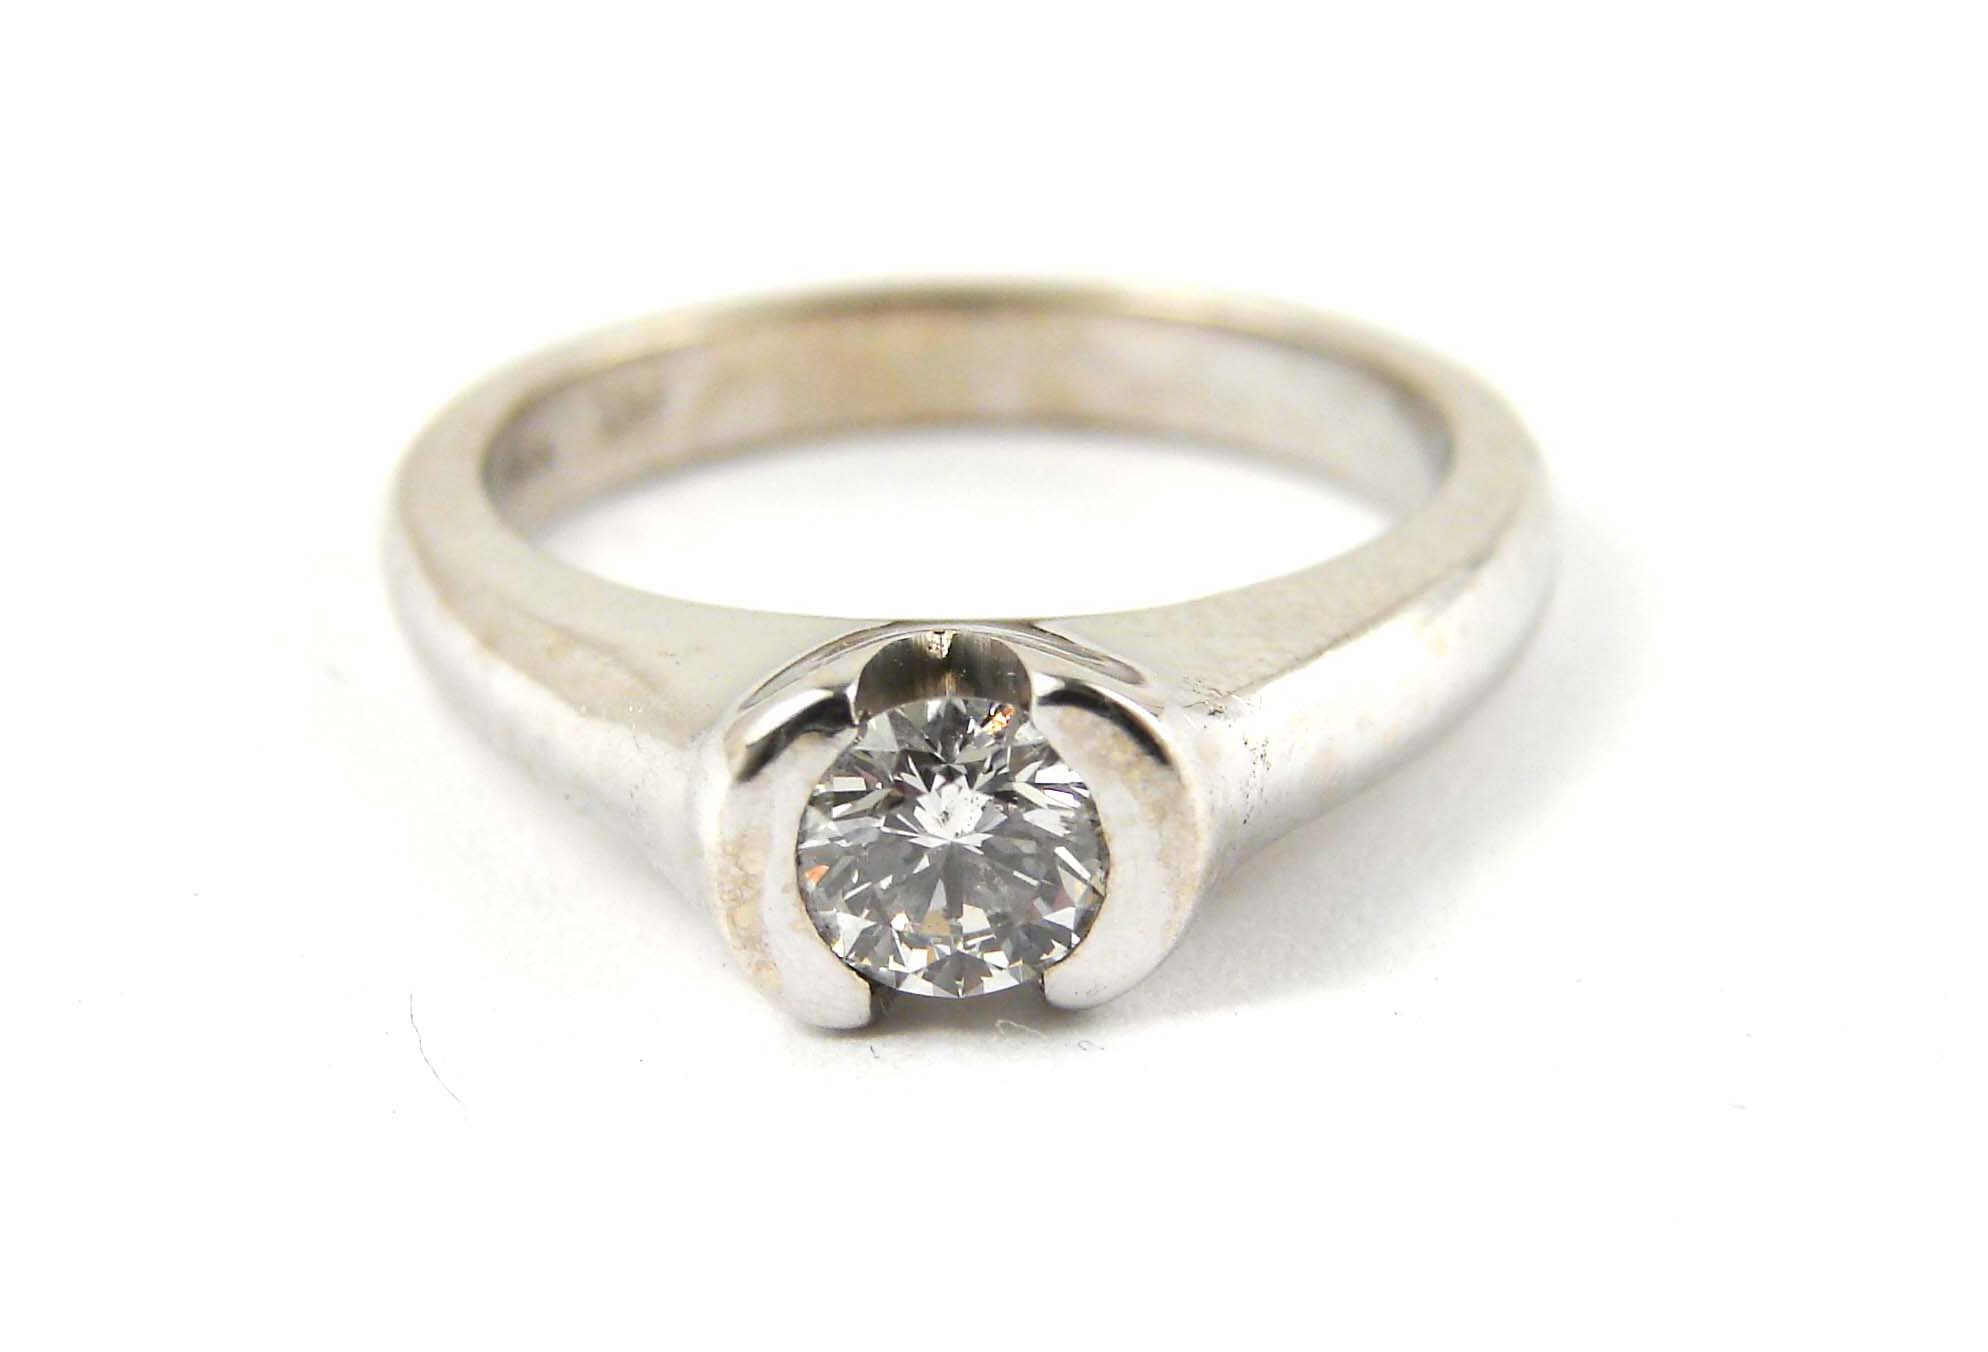 0.57ct diamond center stone set in a 14kt white gold wide semi bezel, very classic and practical setting.  Starting at $2800 for this stone size and SI clarity and GH colour  Can be customizable with any stone, size, metal etc.